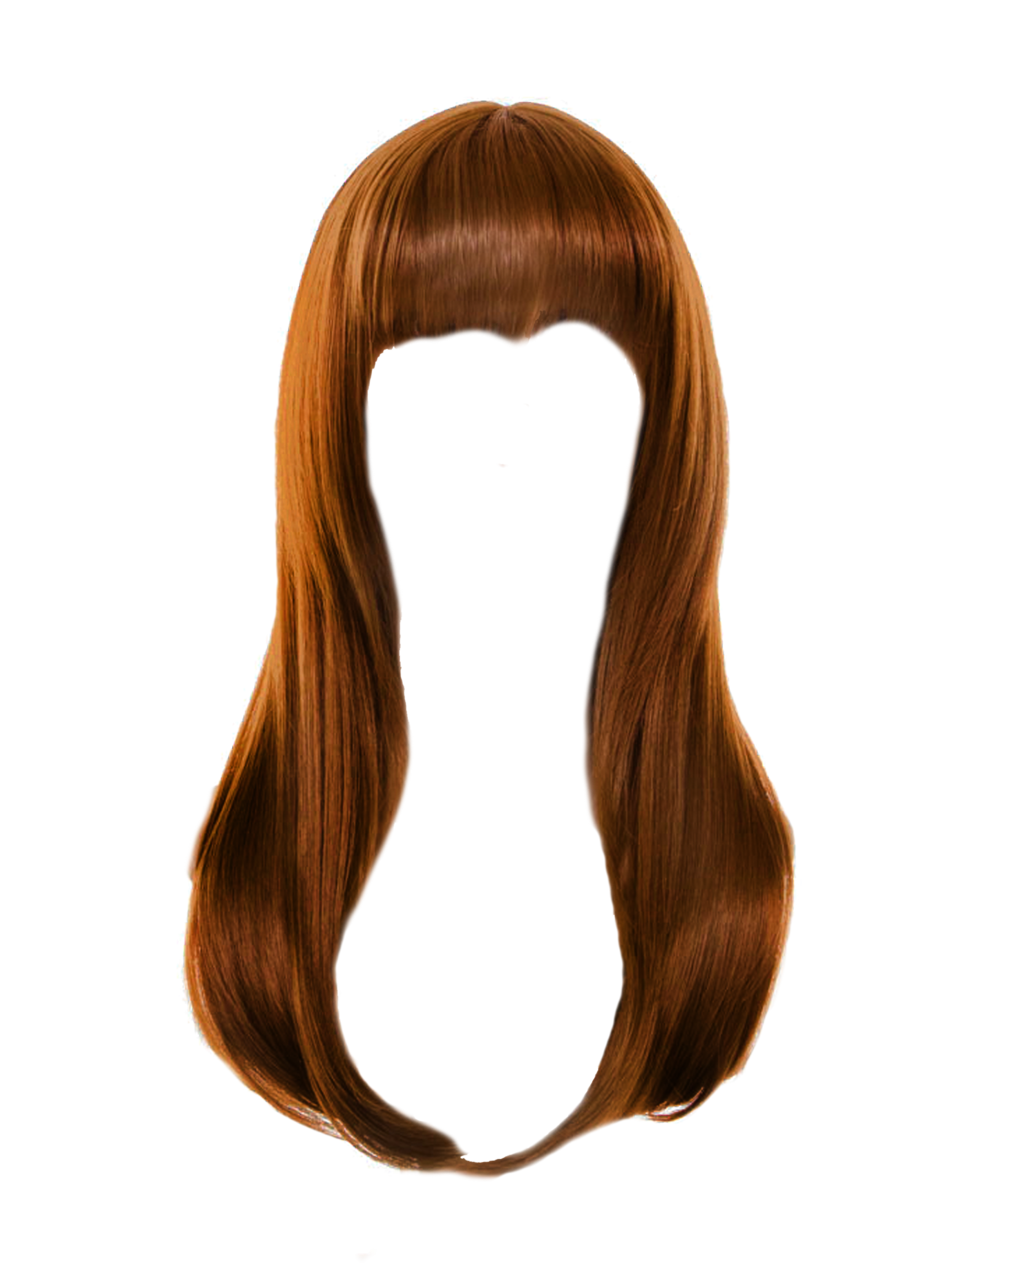 Anime girl hair png. Clipart transparent background high